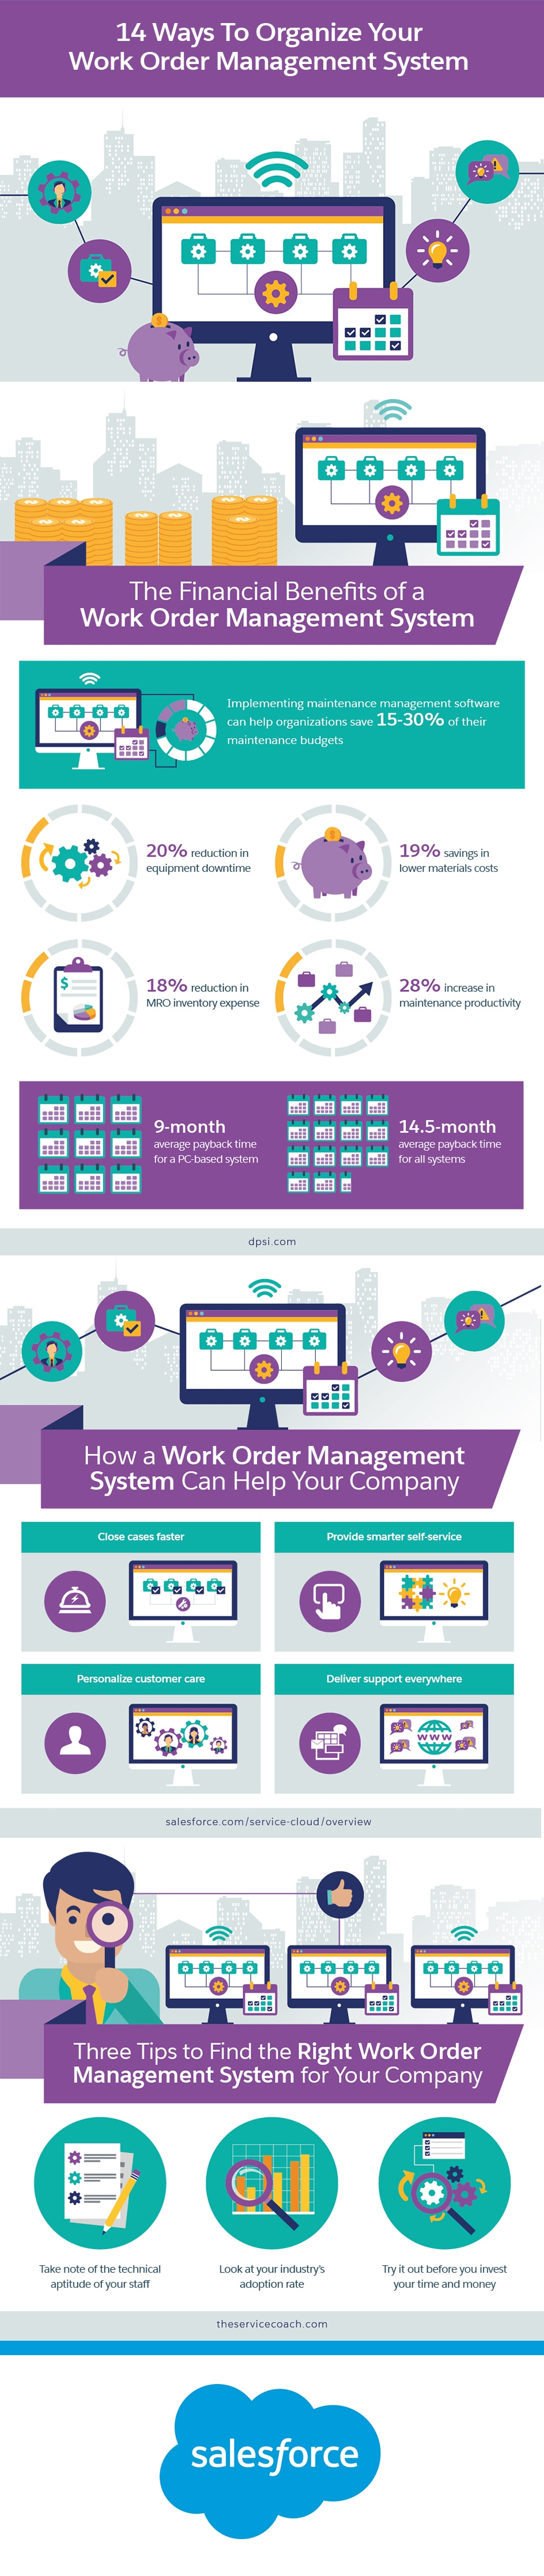 14 Ways To Organize Your Work Order Management System Infographic